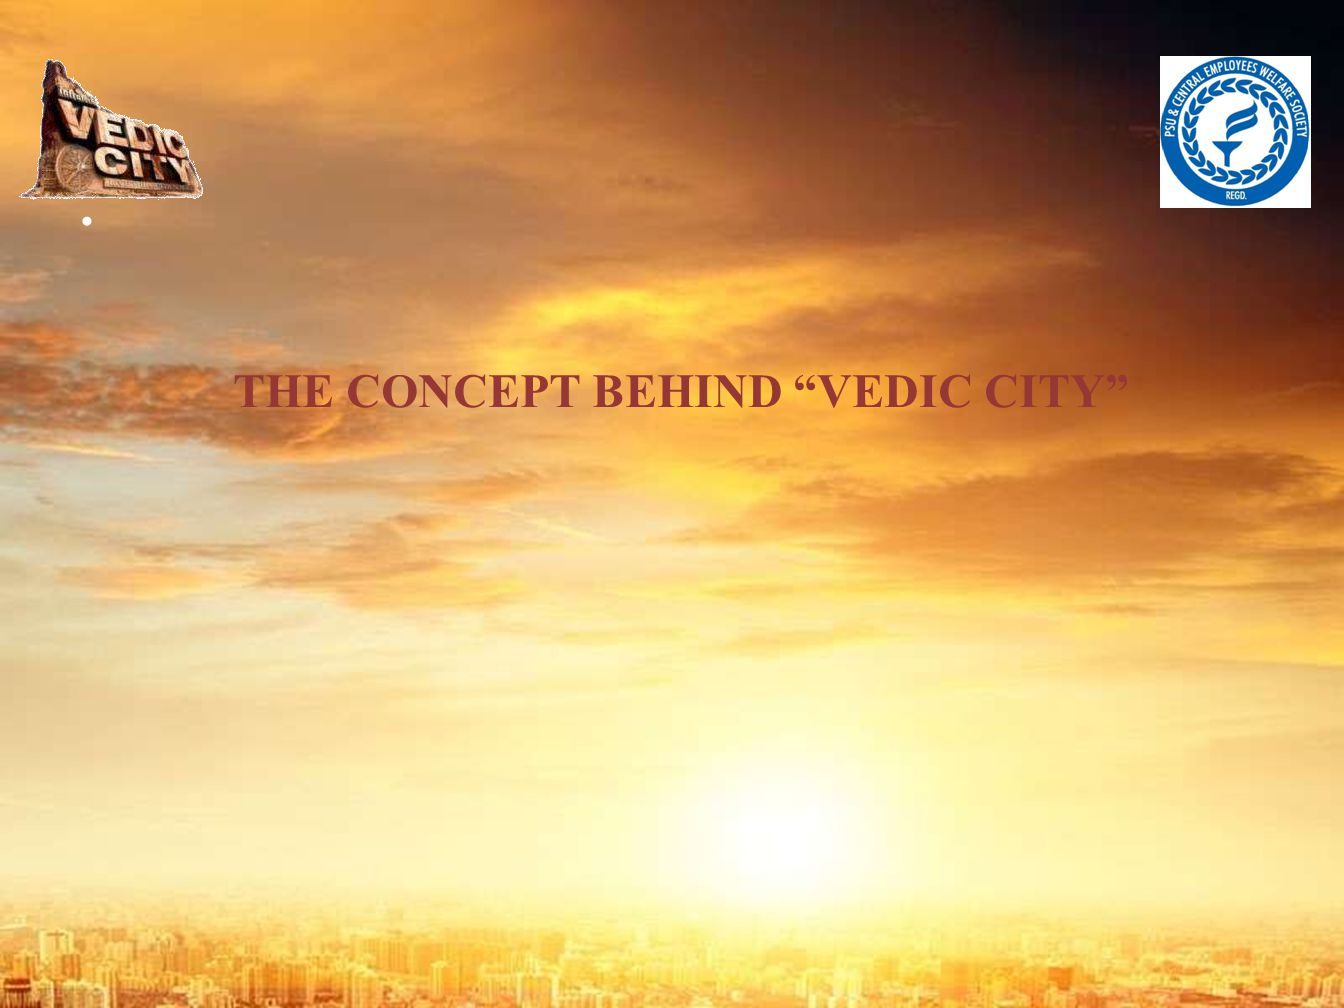 THE CONCEPT BEHIND VEDIC CITY